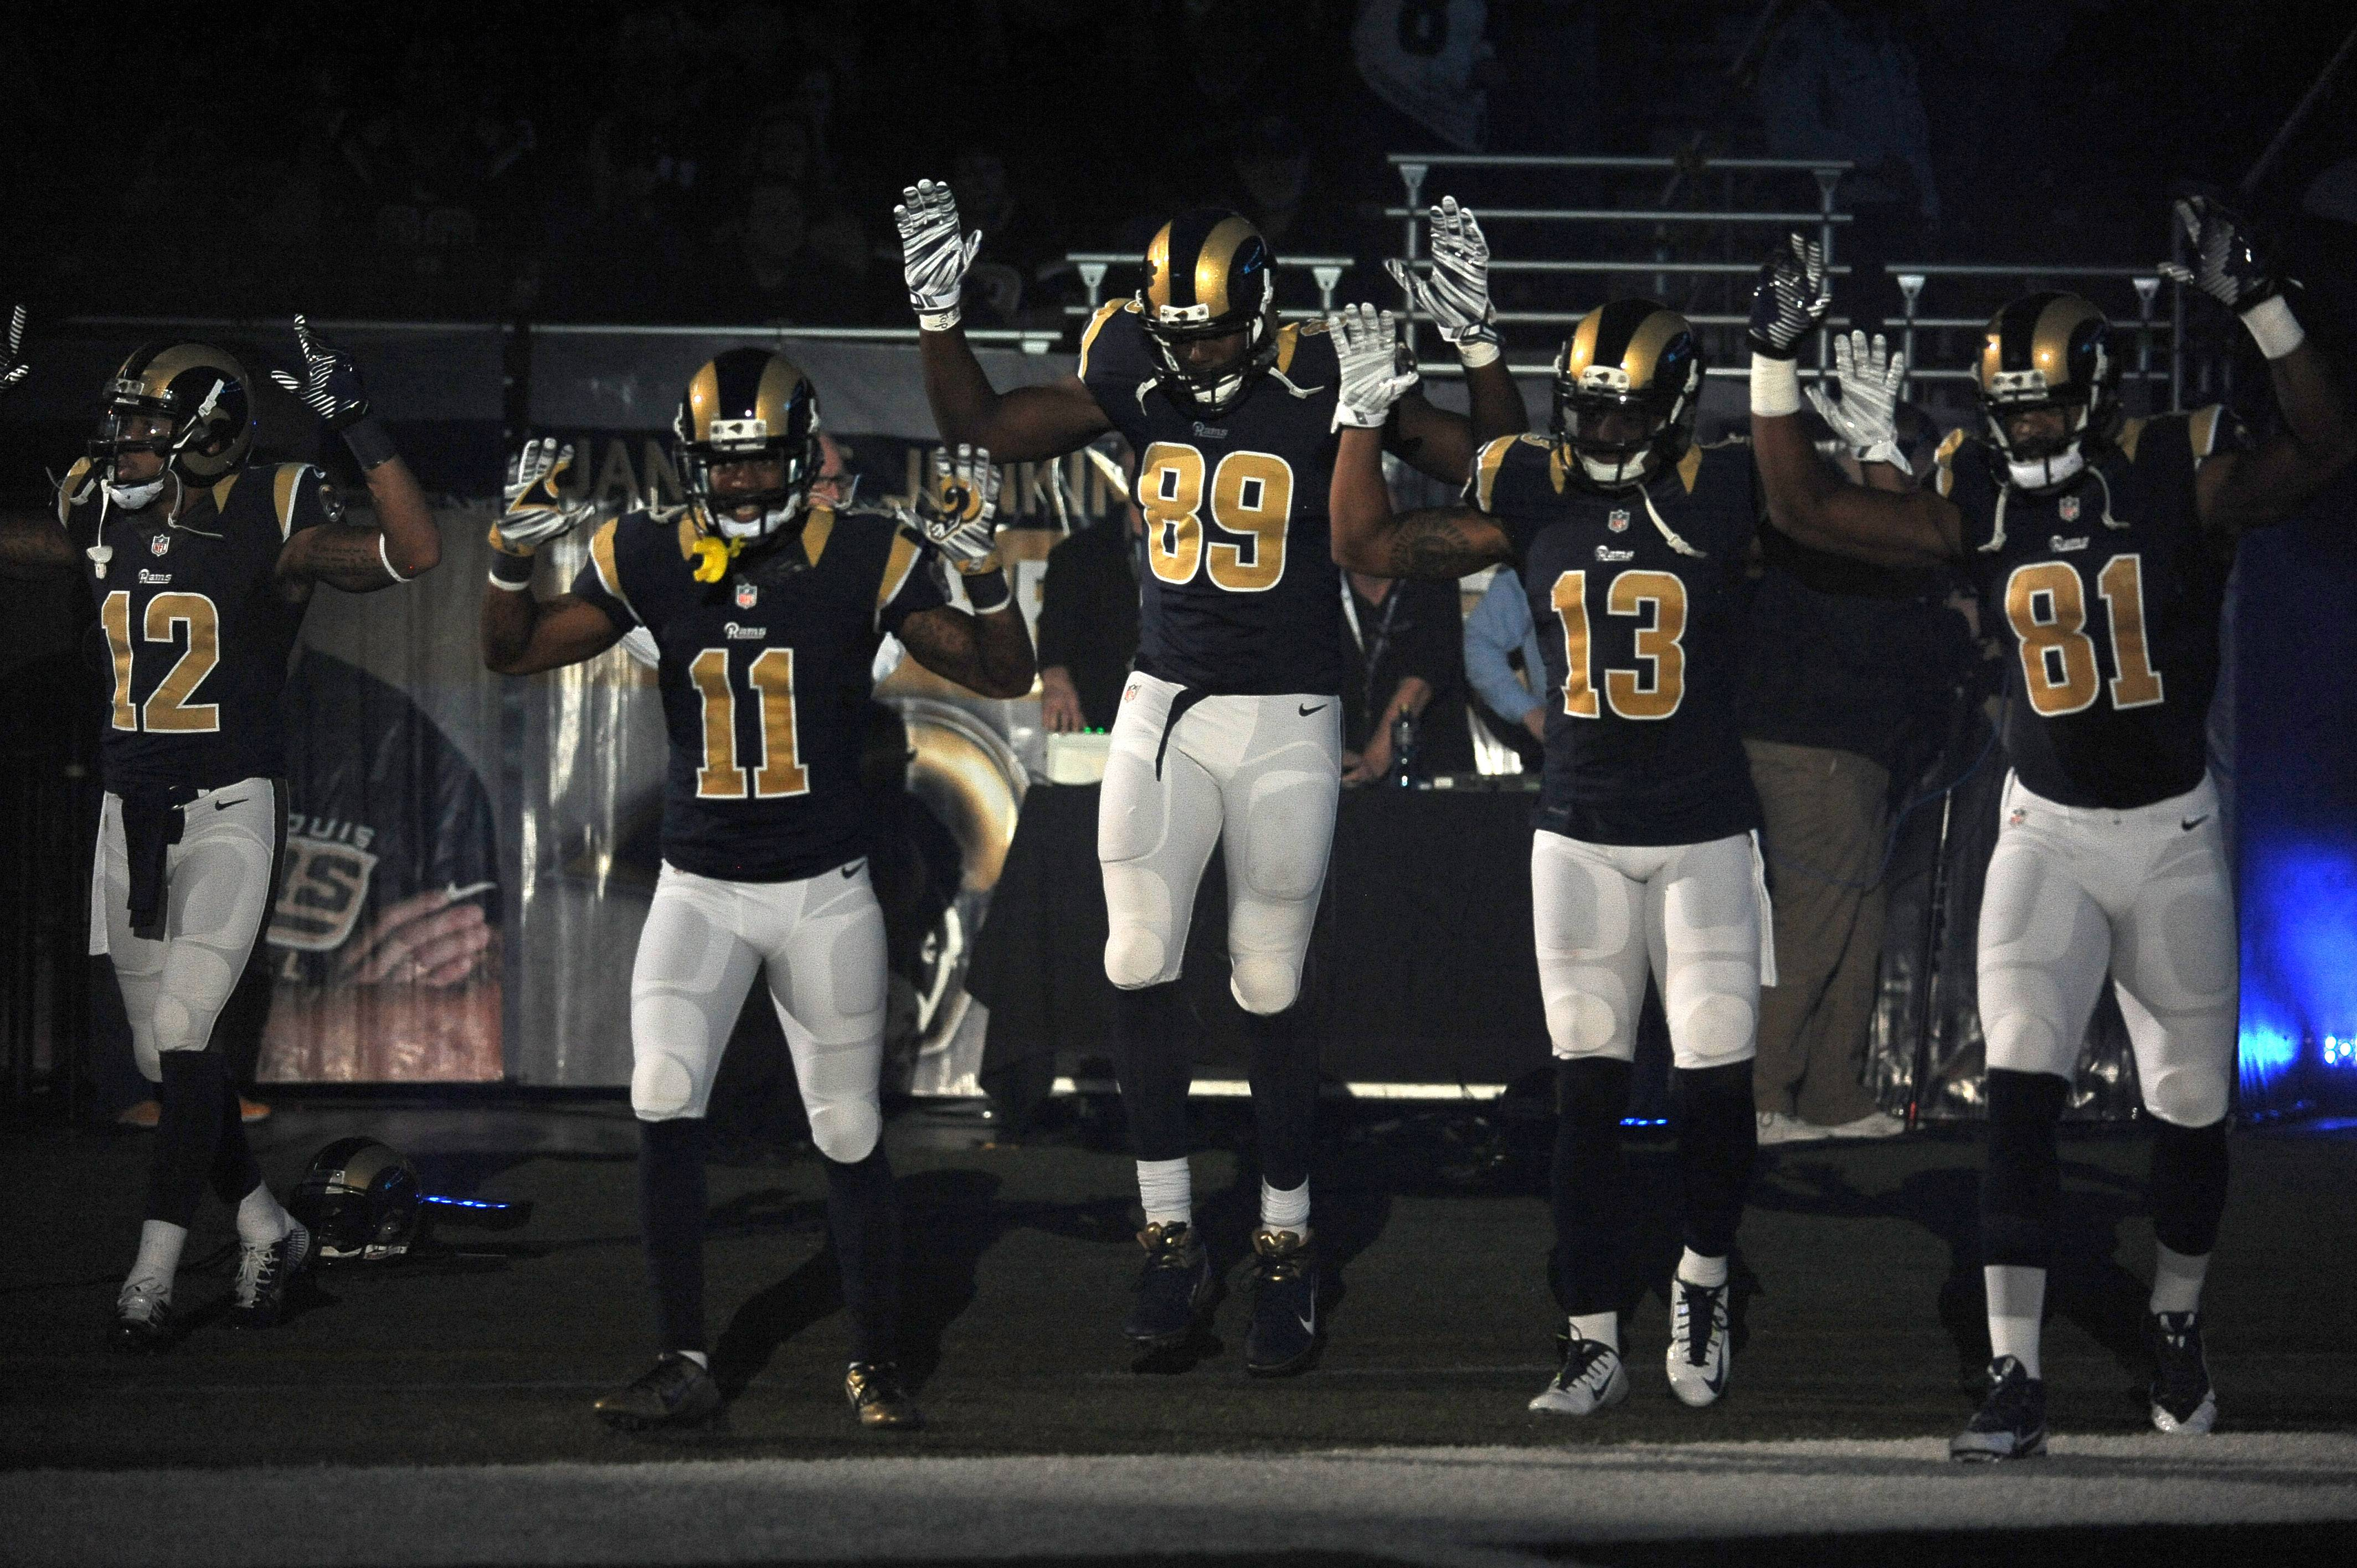 Rams players raise arms in apparent show of solidarity with Ferguson protesters